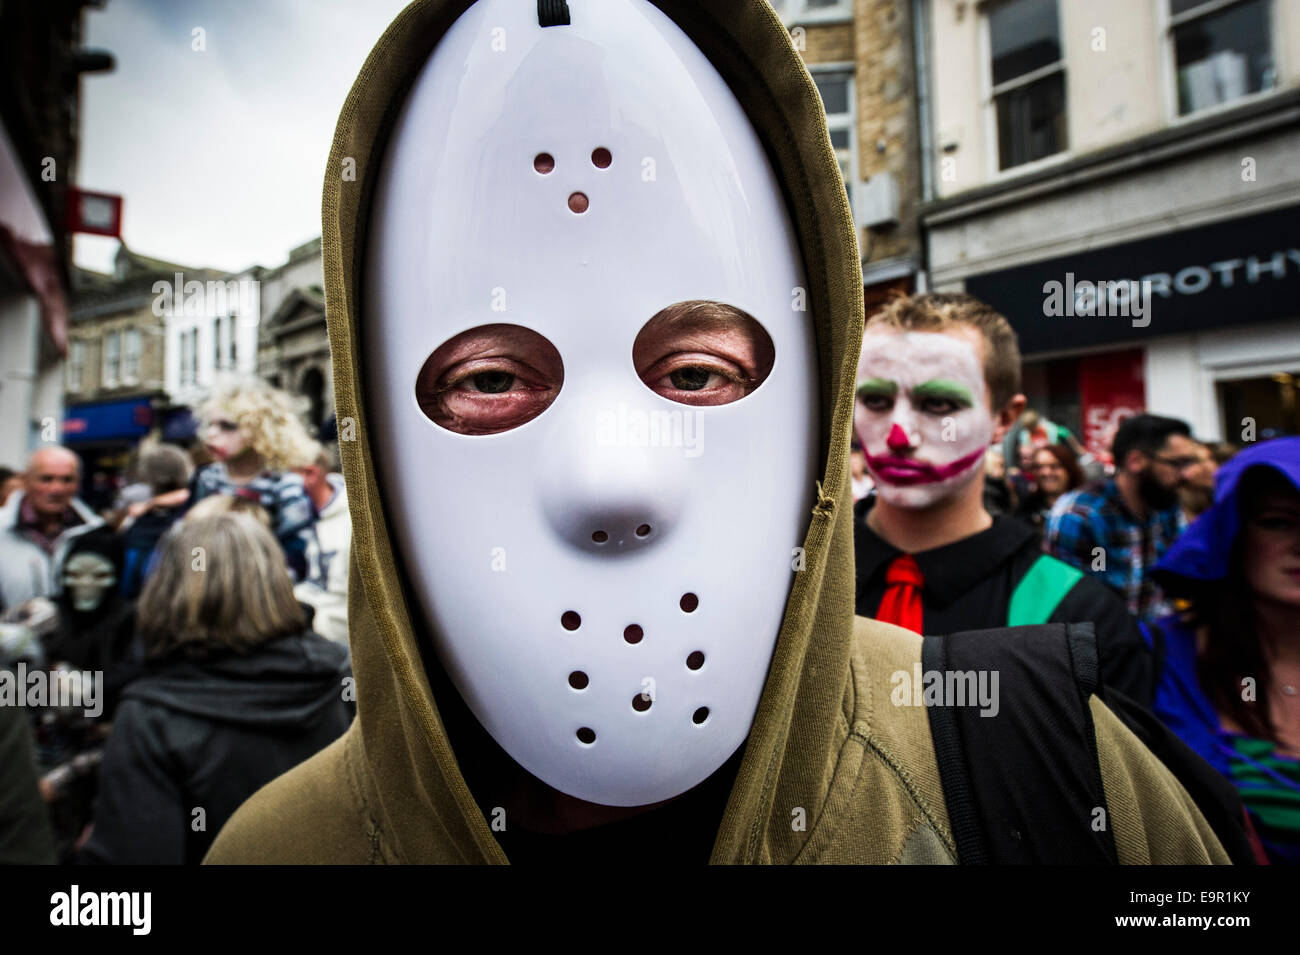 Newquay, Cornwall. 31st October 204.  A masked zombie stands in Newquay High Street. Credit:  Gordon Scammell/Alamy - Stock Image